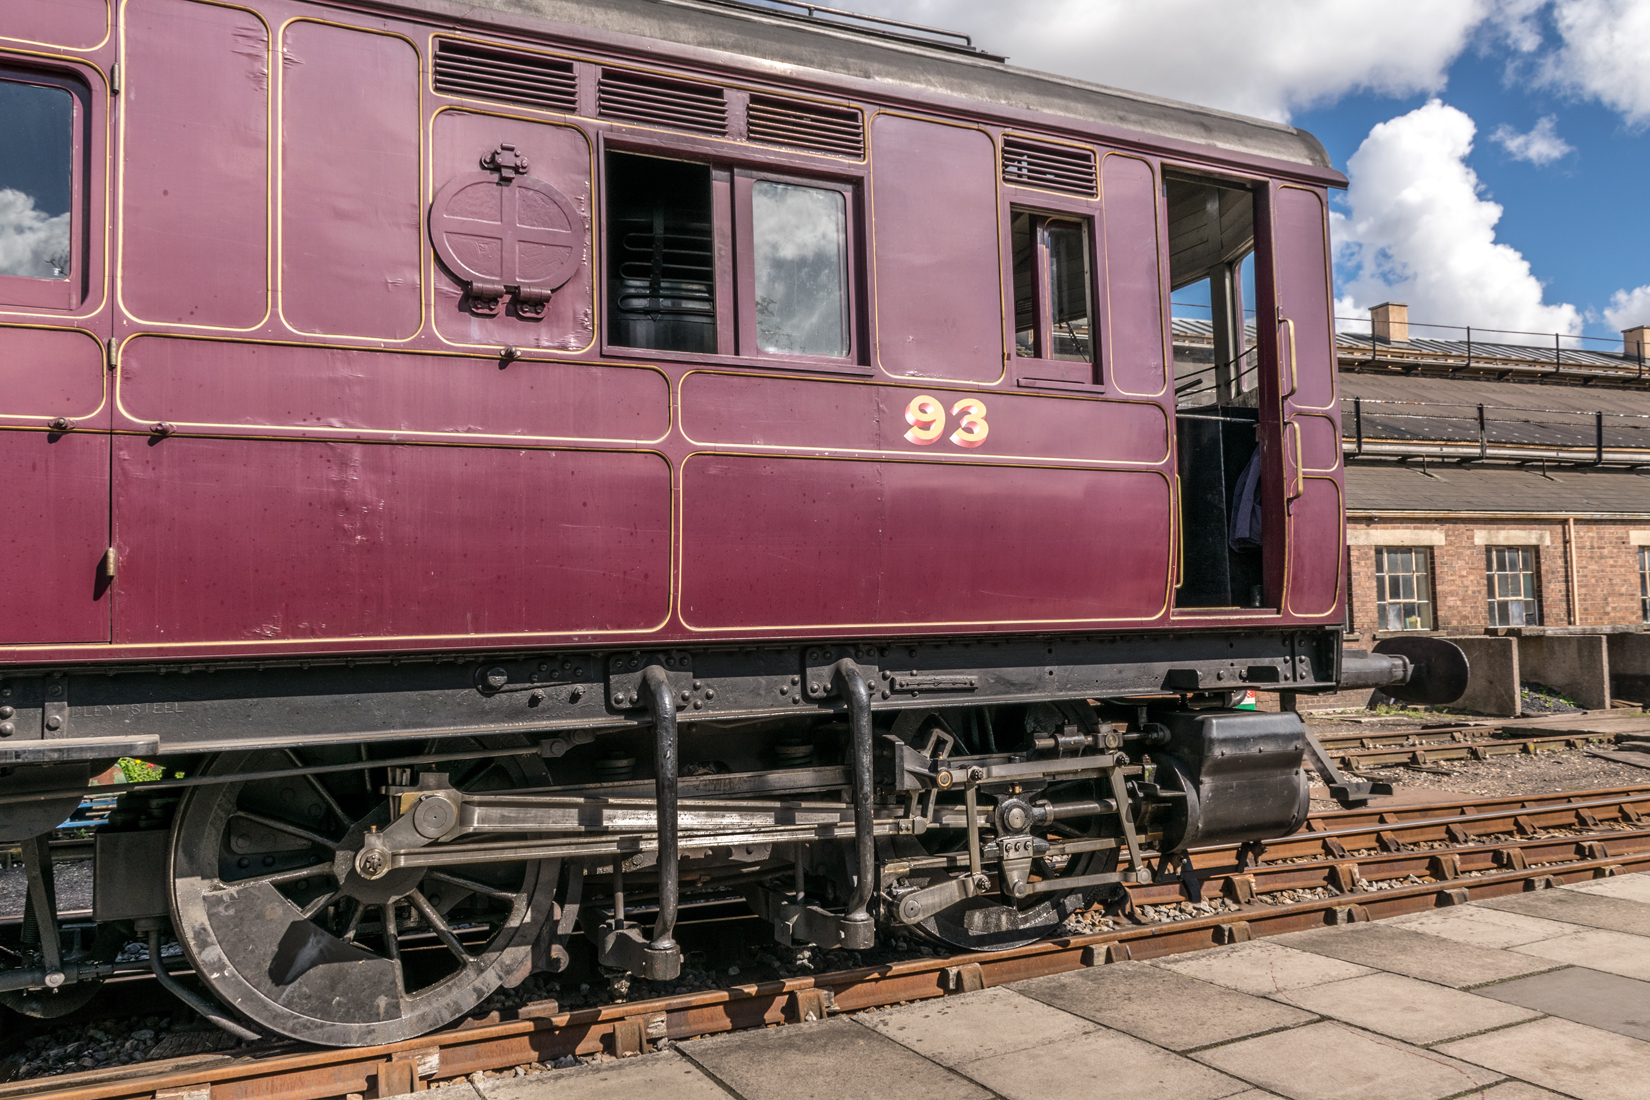 Steam Railmotor number 93